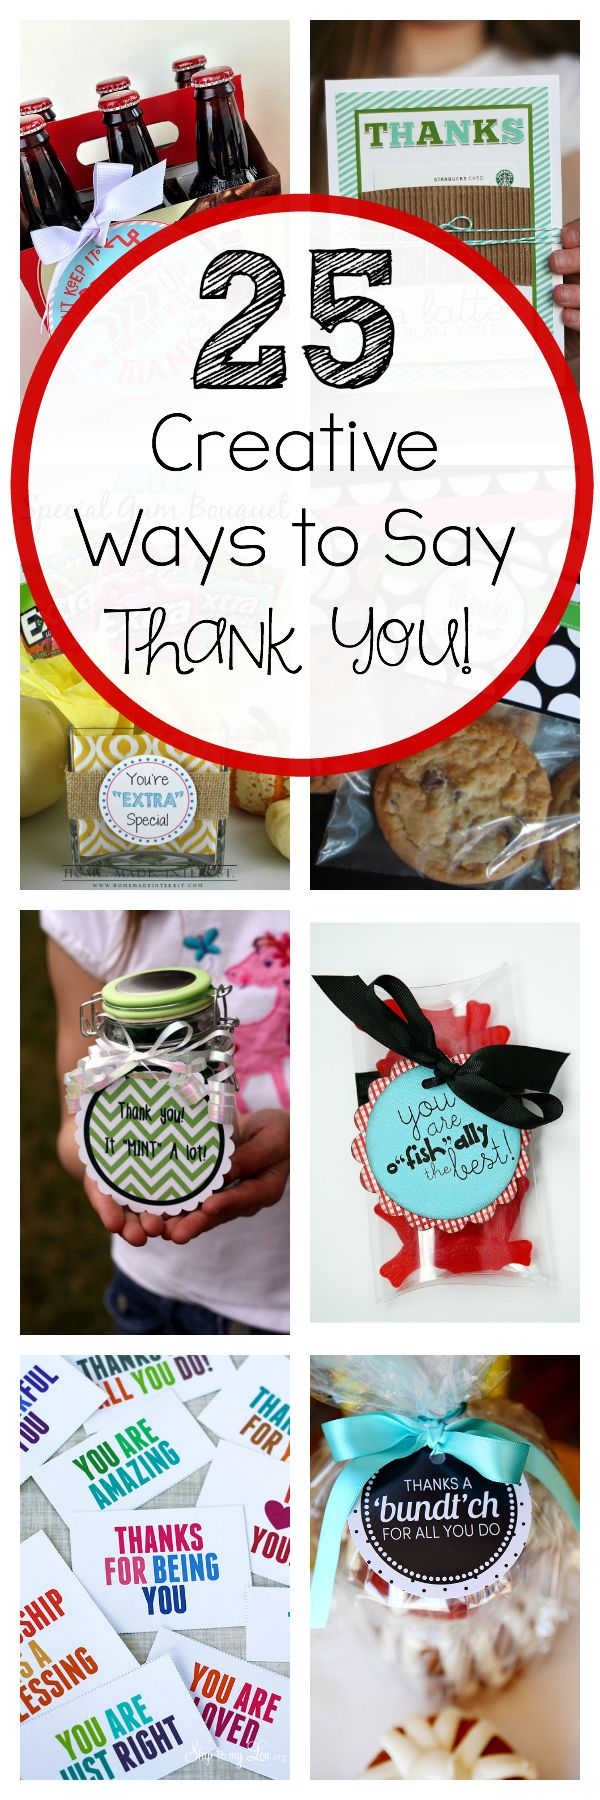 Scrapbook ideas for teachers - 25 Creative Ways To Say Thank You